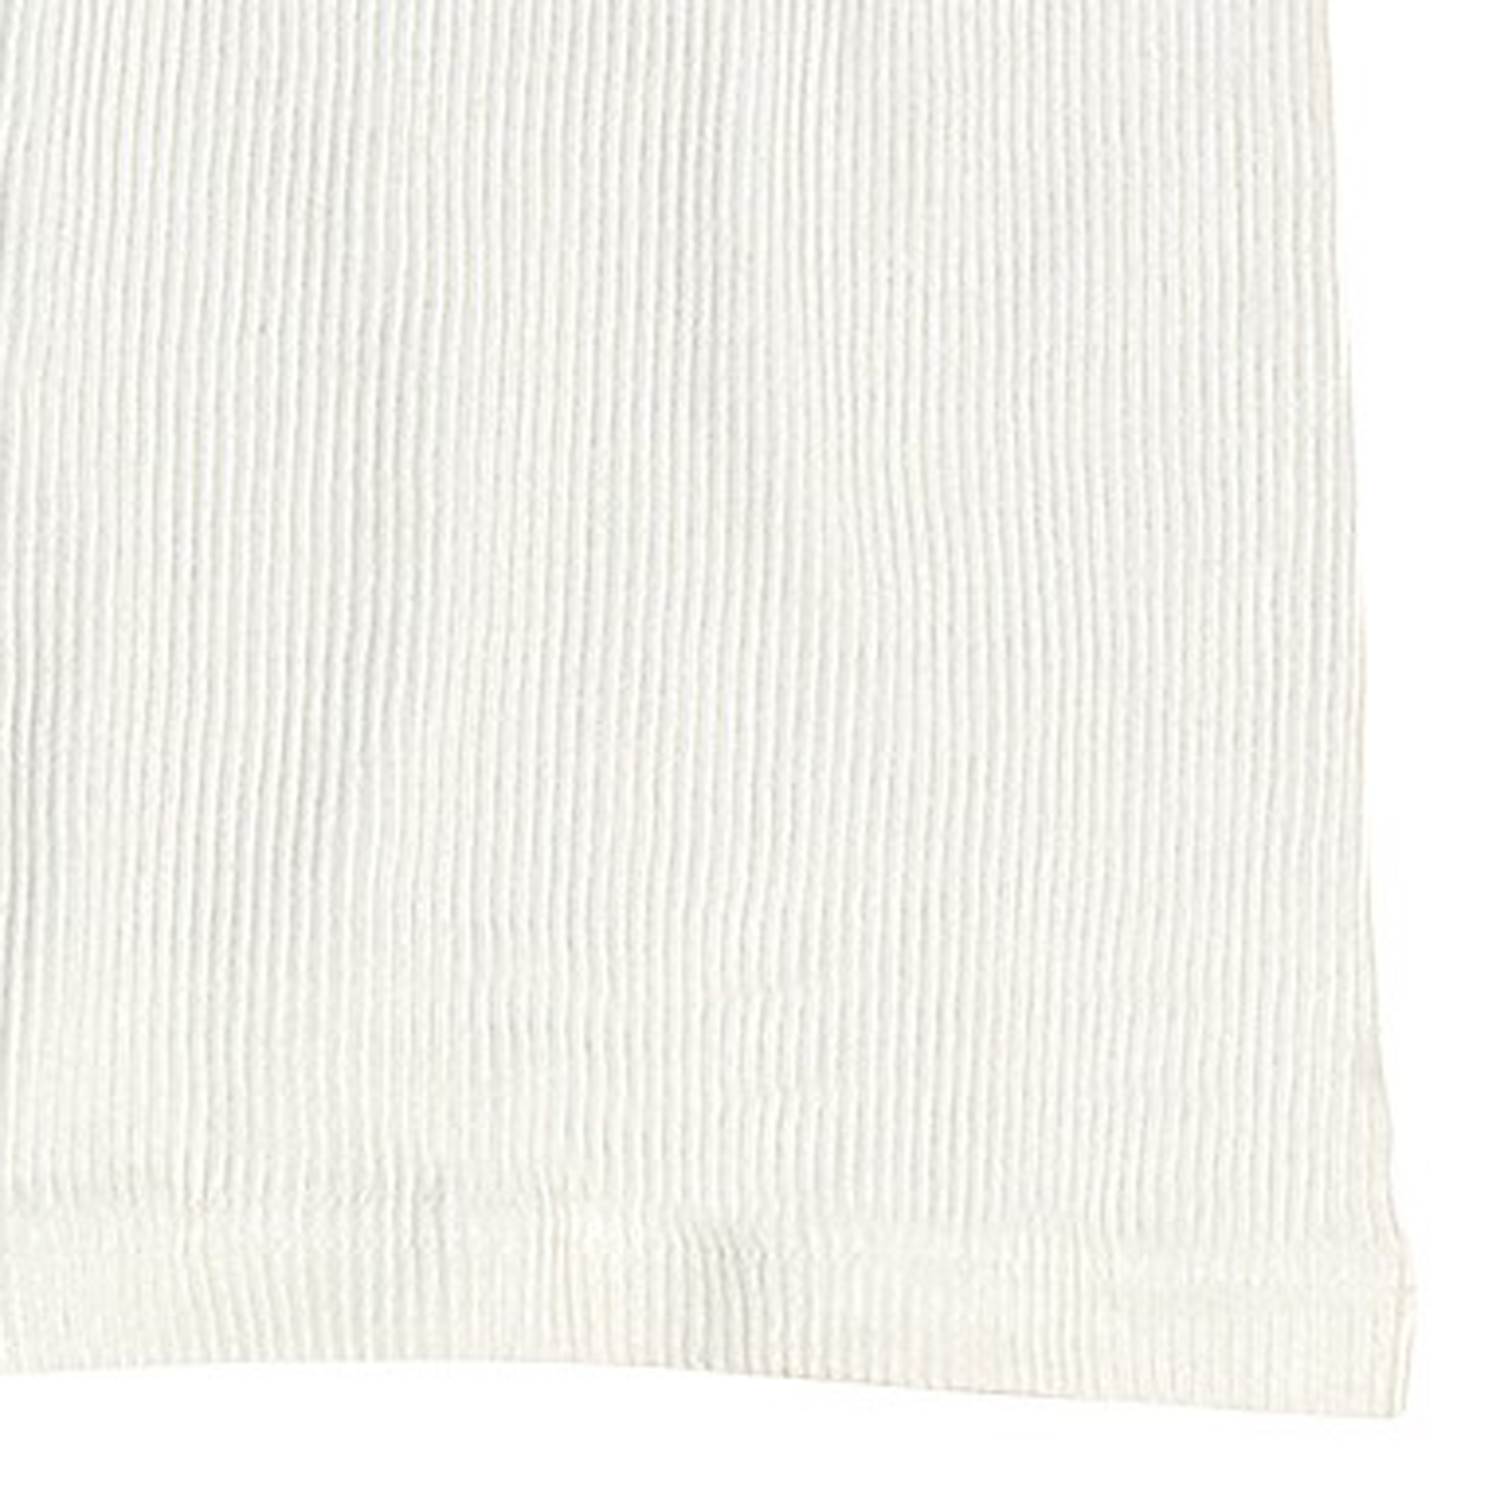 Detail Image to Shirt in white from Jockey in extra large sizes up to 5XL double rib